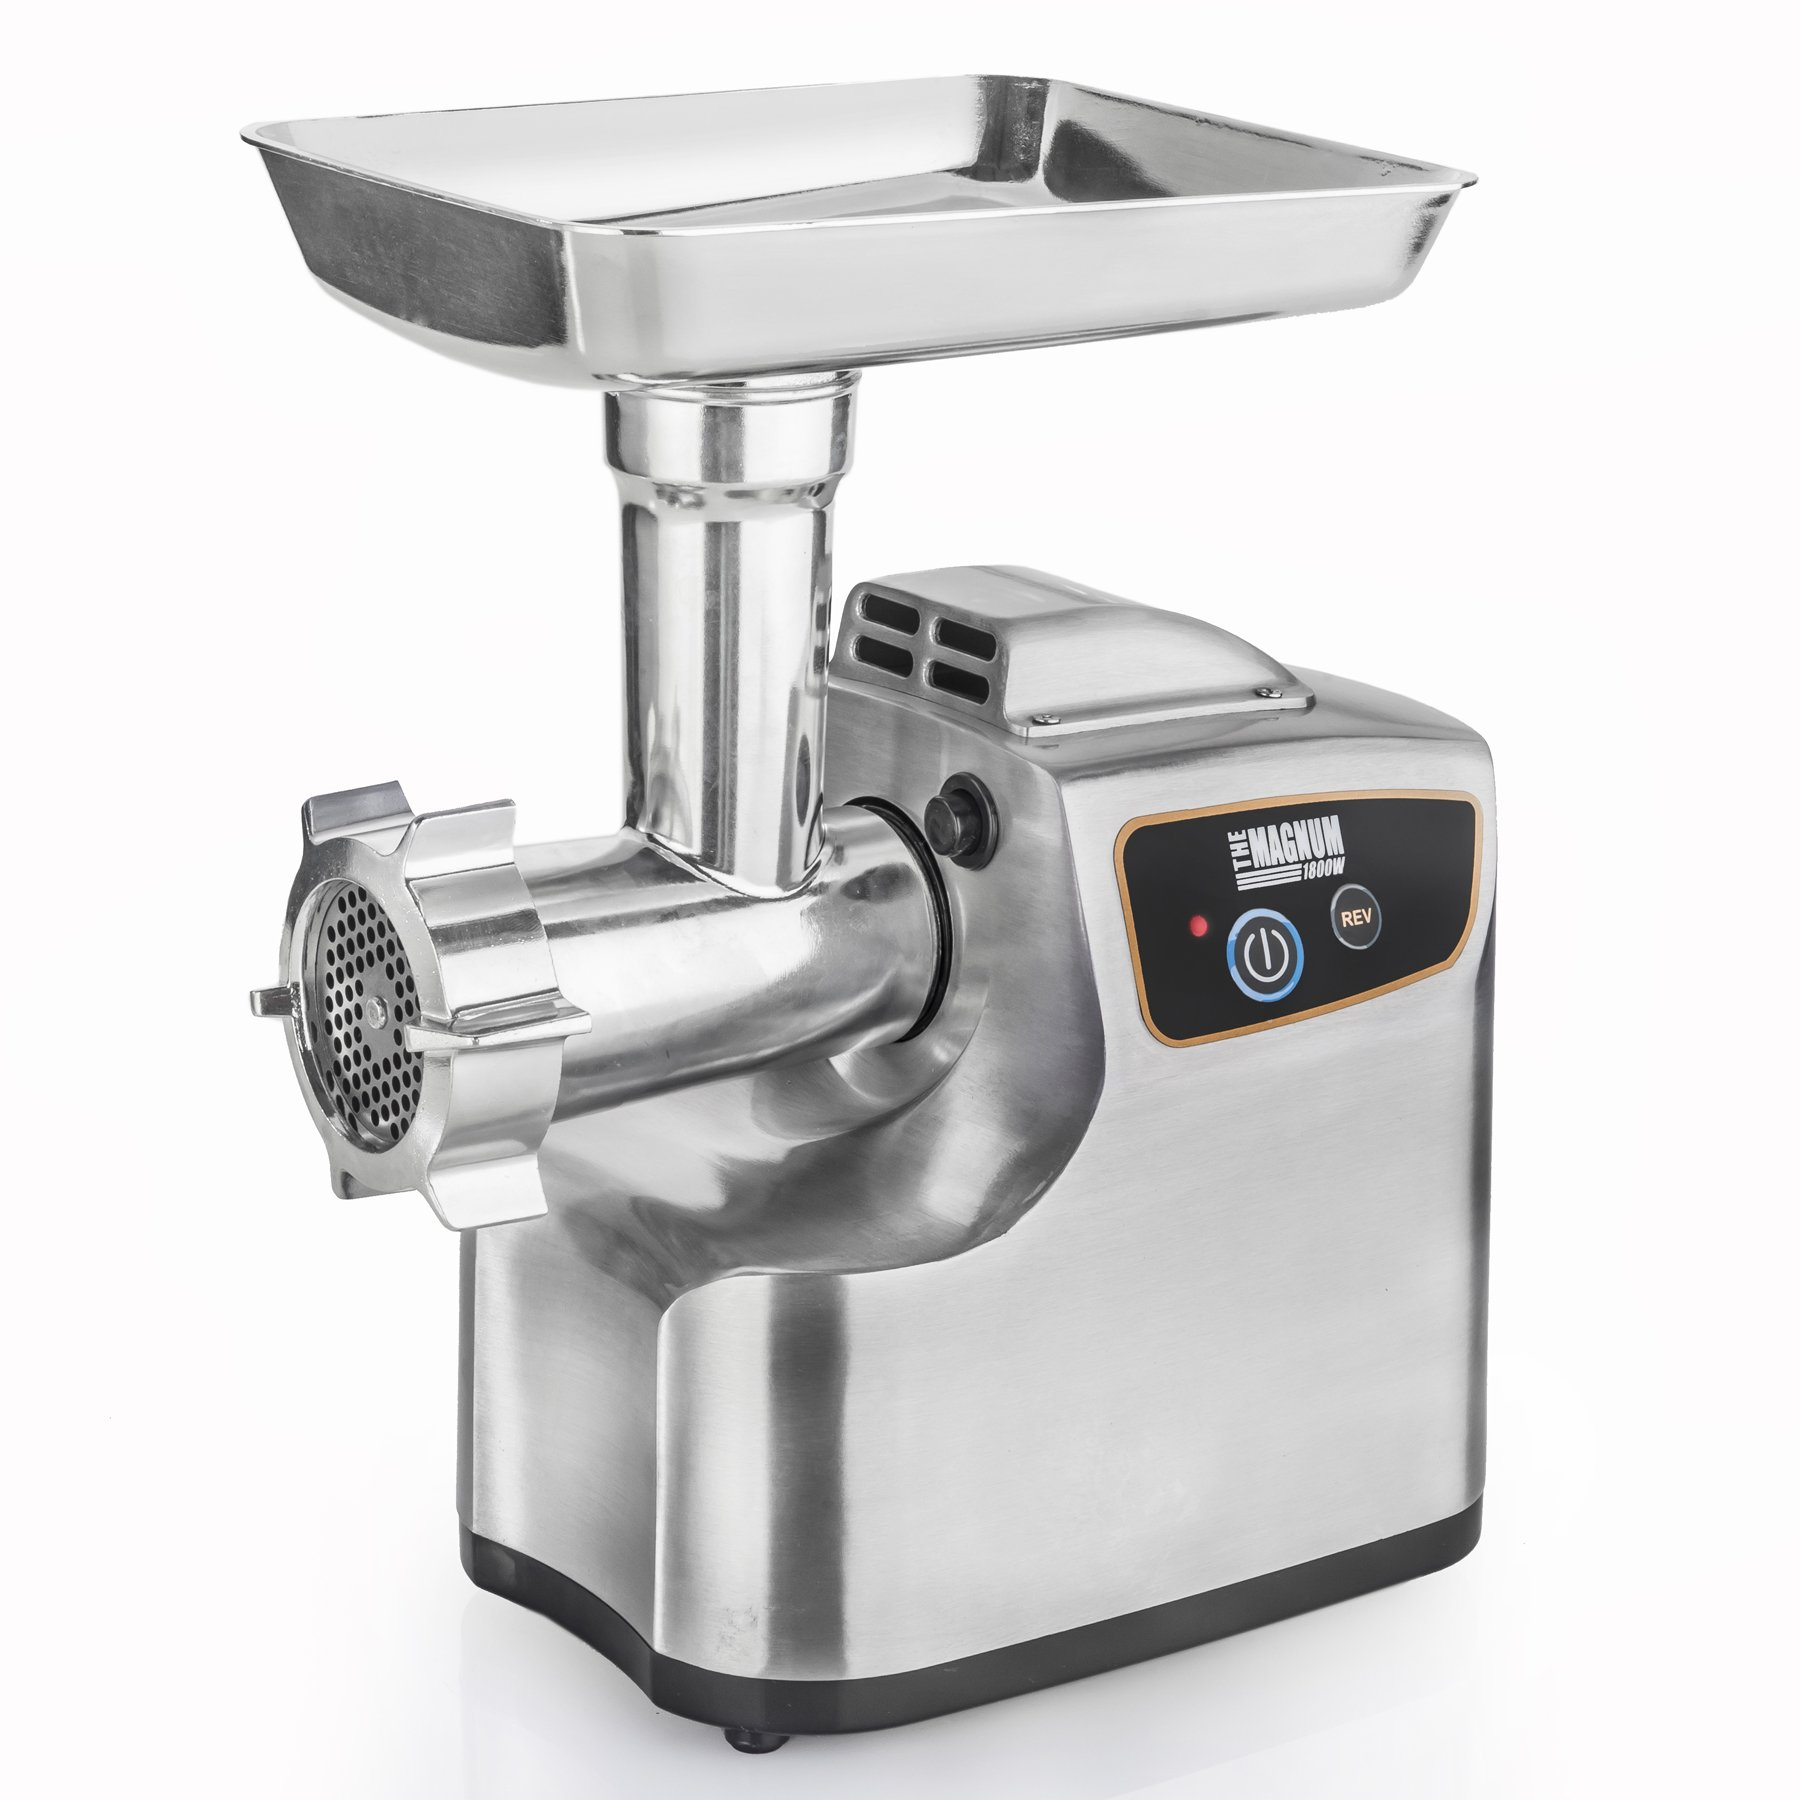 STX INTERNATIONAL STX-1800-MG Magnum Patented Air Cooled Electric Meat Grinder and Tomato Juicer with 3 Cutting Blades, 3 Grinding Plates, Kubbe and Sausage Tubes